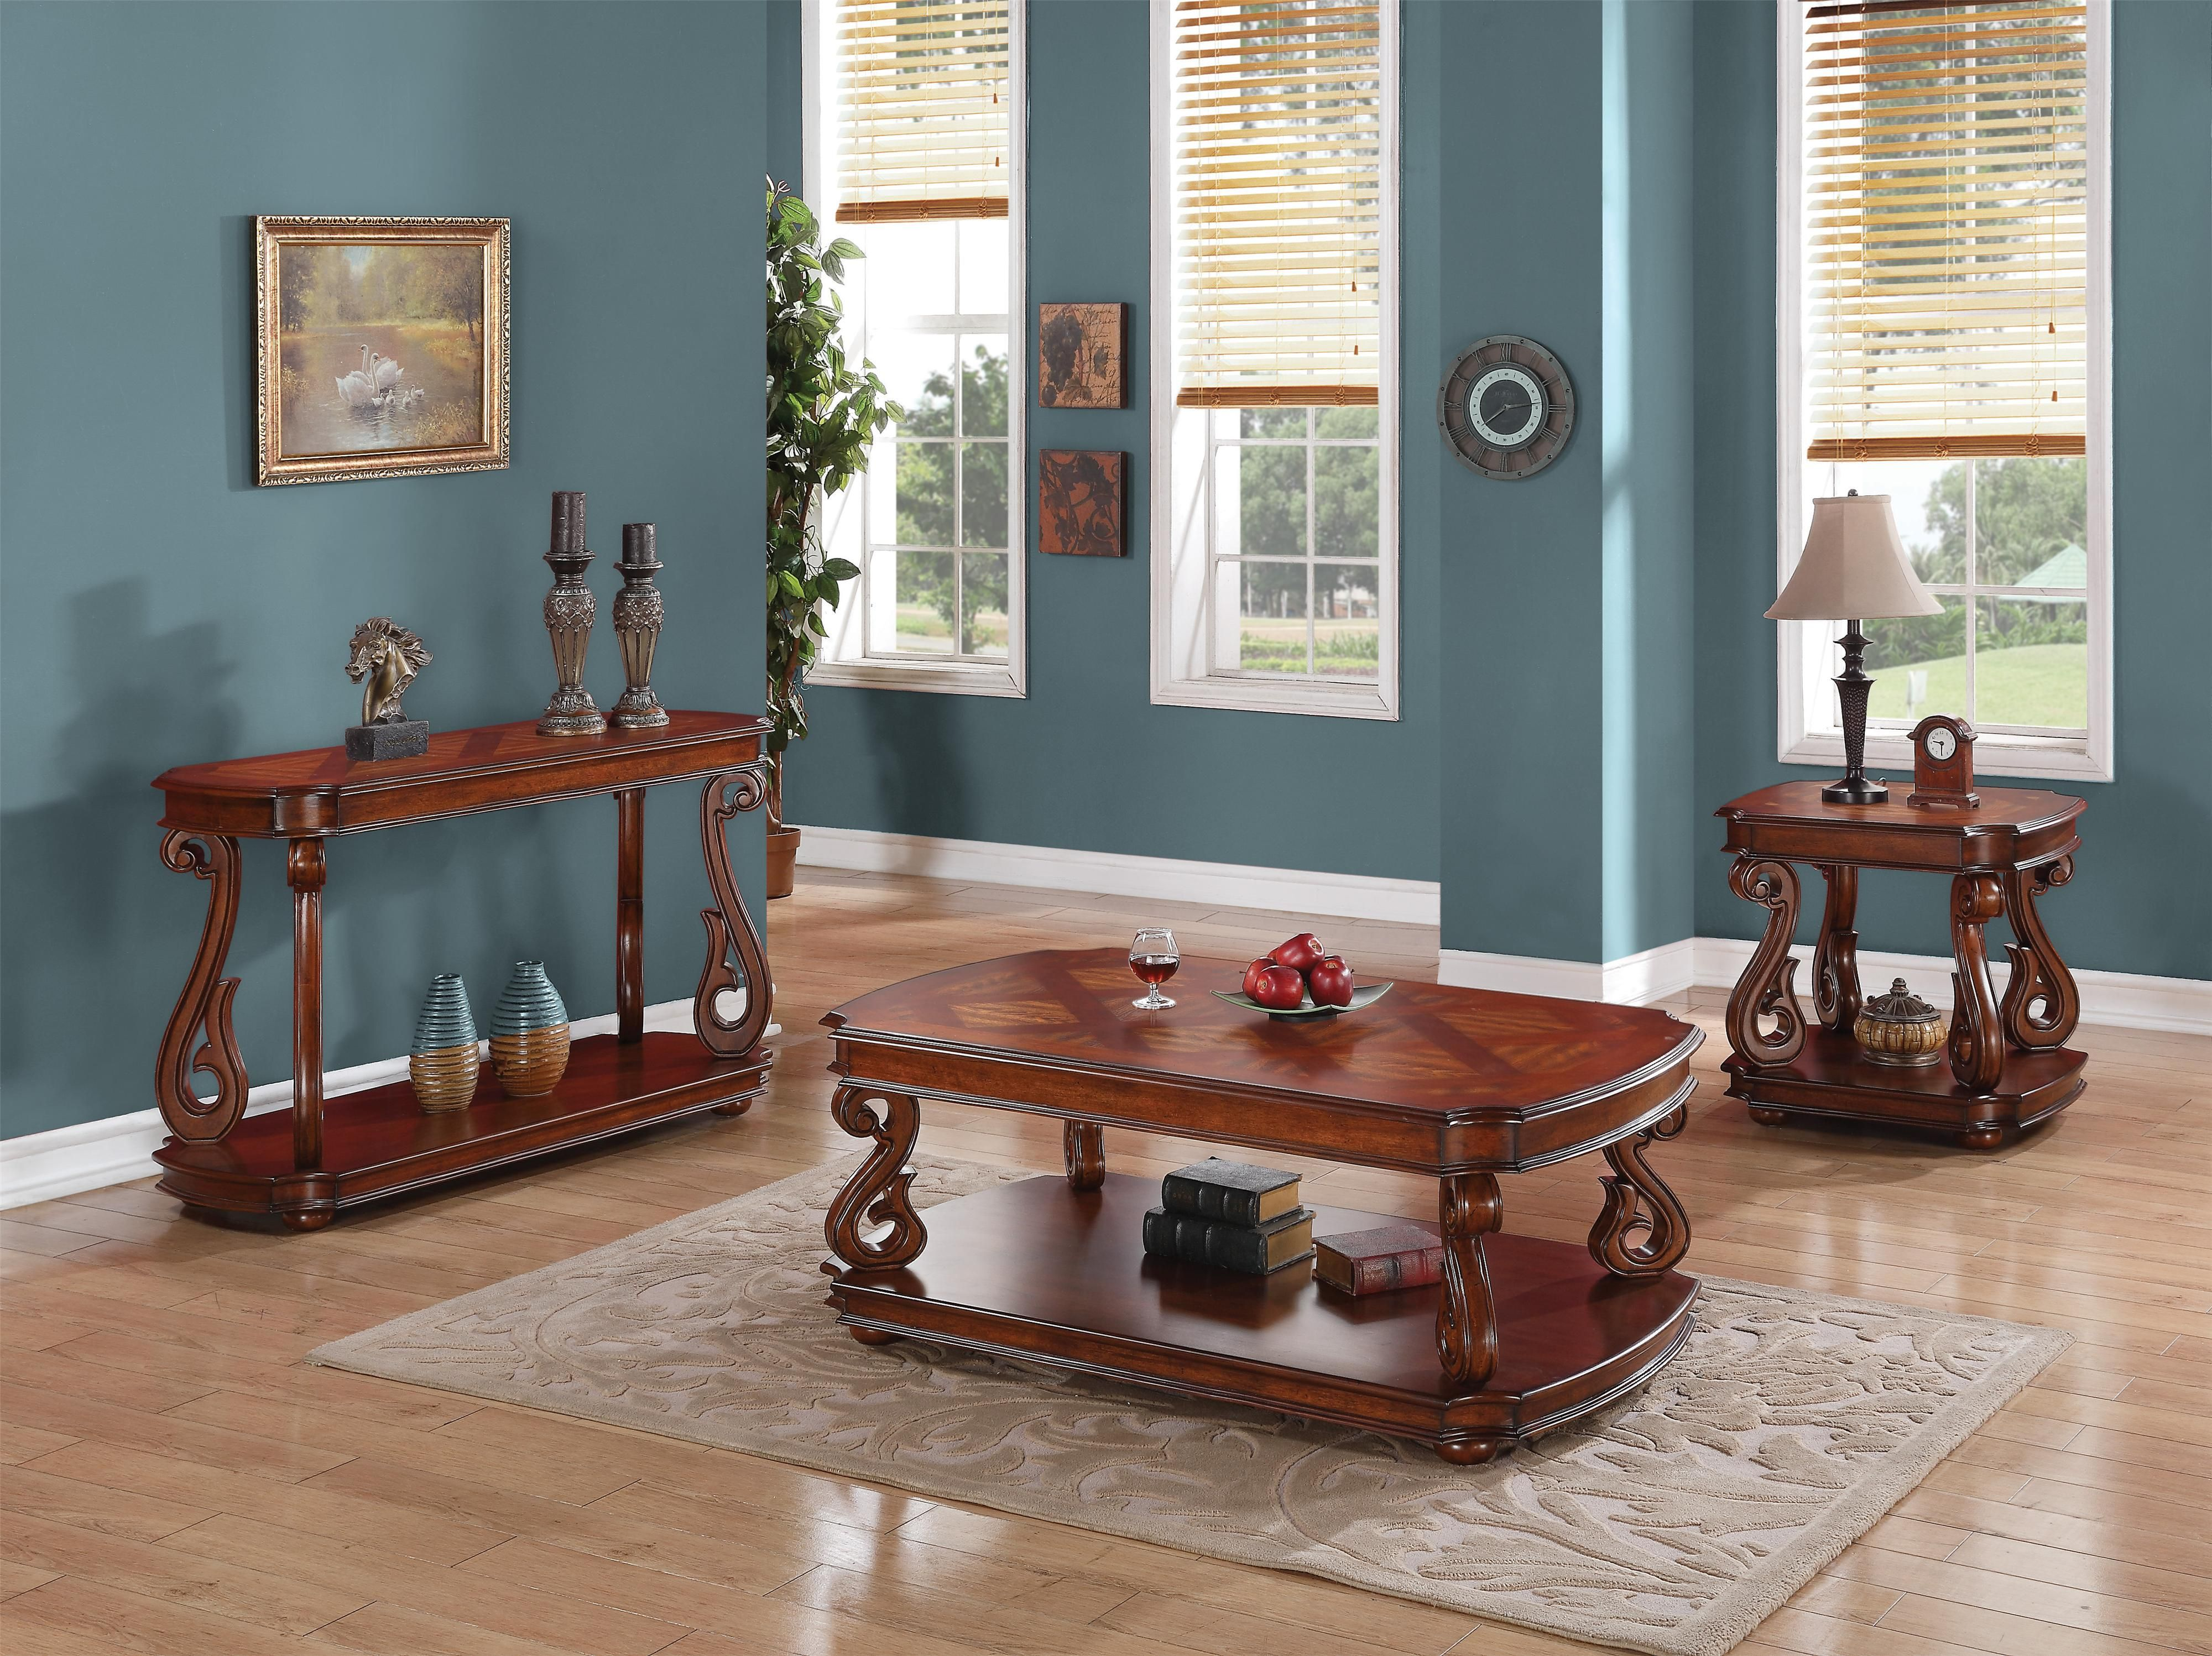 Coaster Occasional Group Traditional End Table With Parquet Veneers In Dark  Cherry Finish   Rooms Furniture   End Table Houston, Sugar Land, Katy, ...